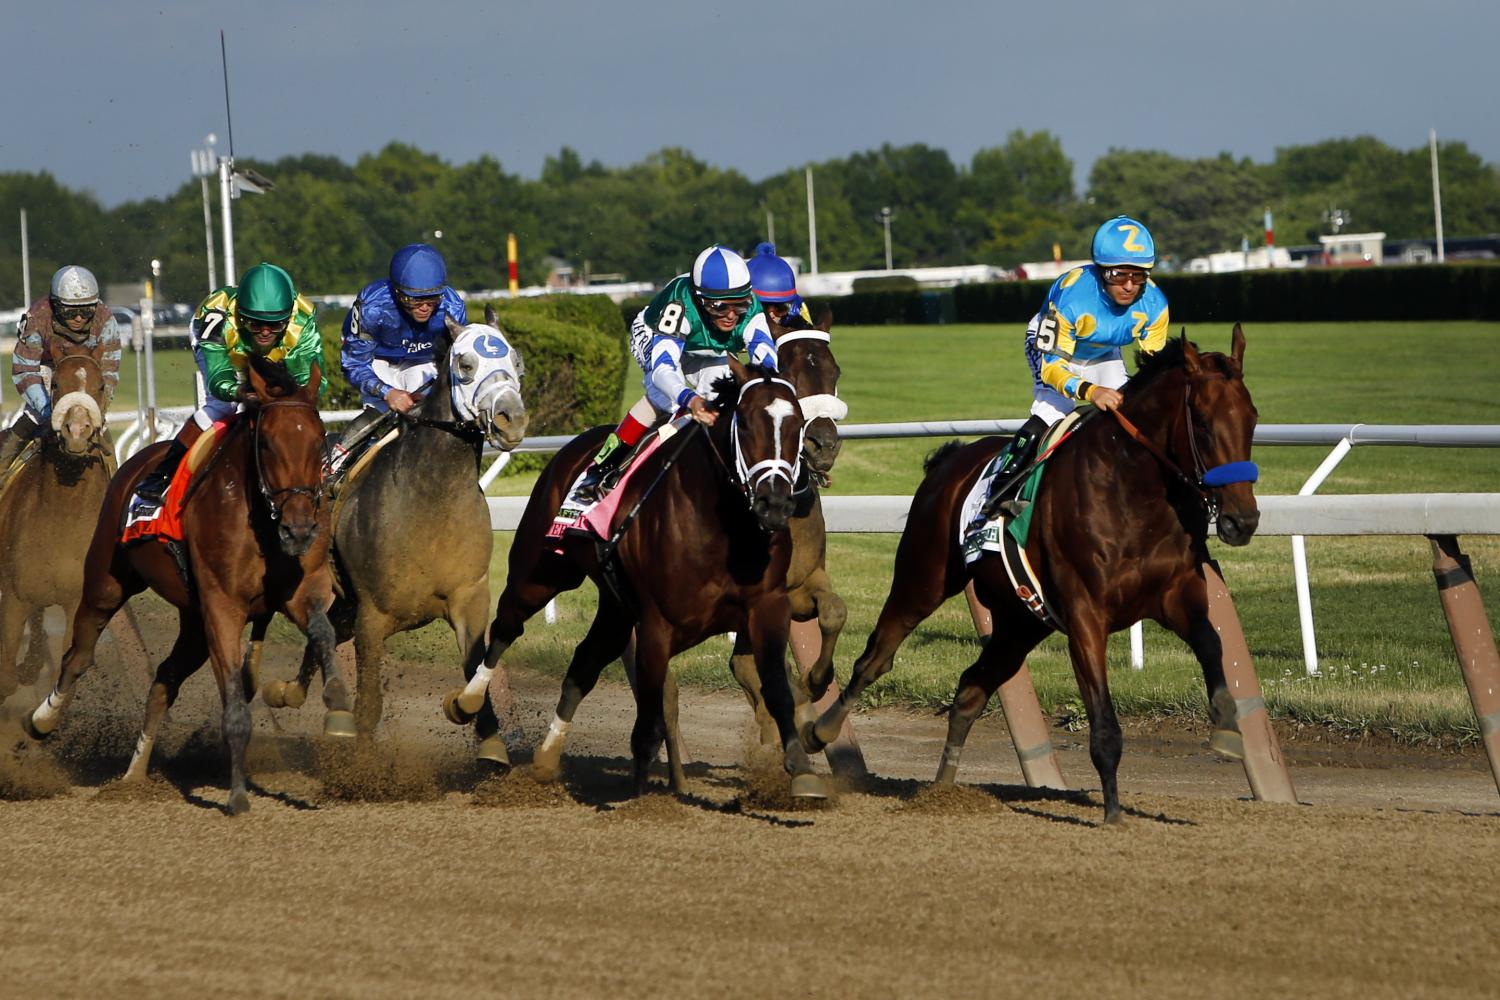 American Pharaoh winning the Belmont Stakes